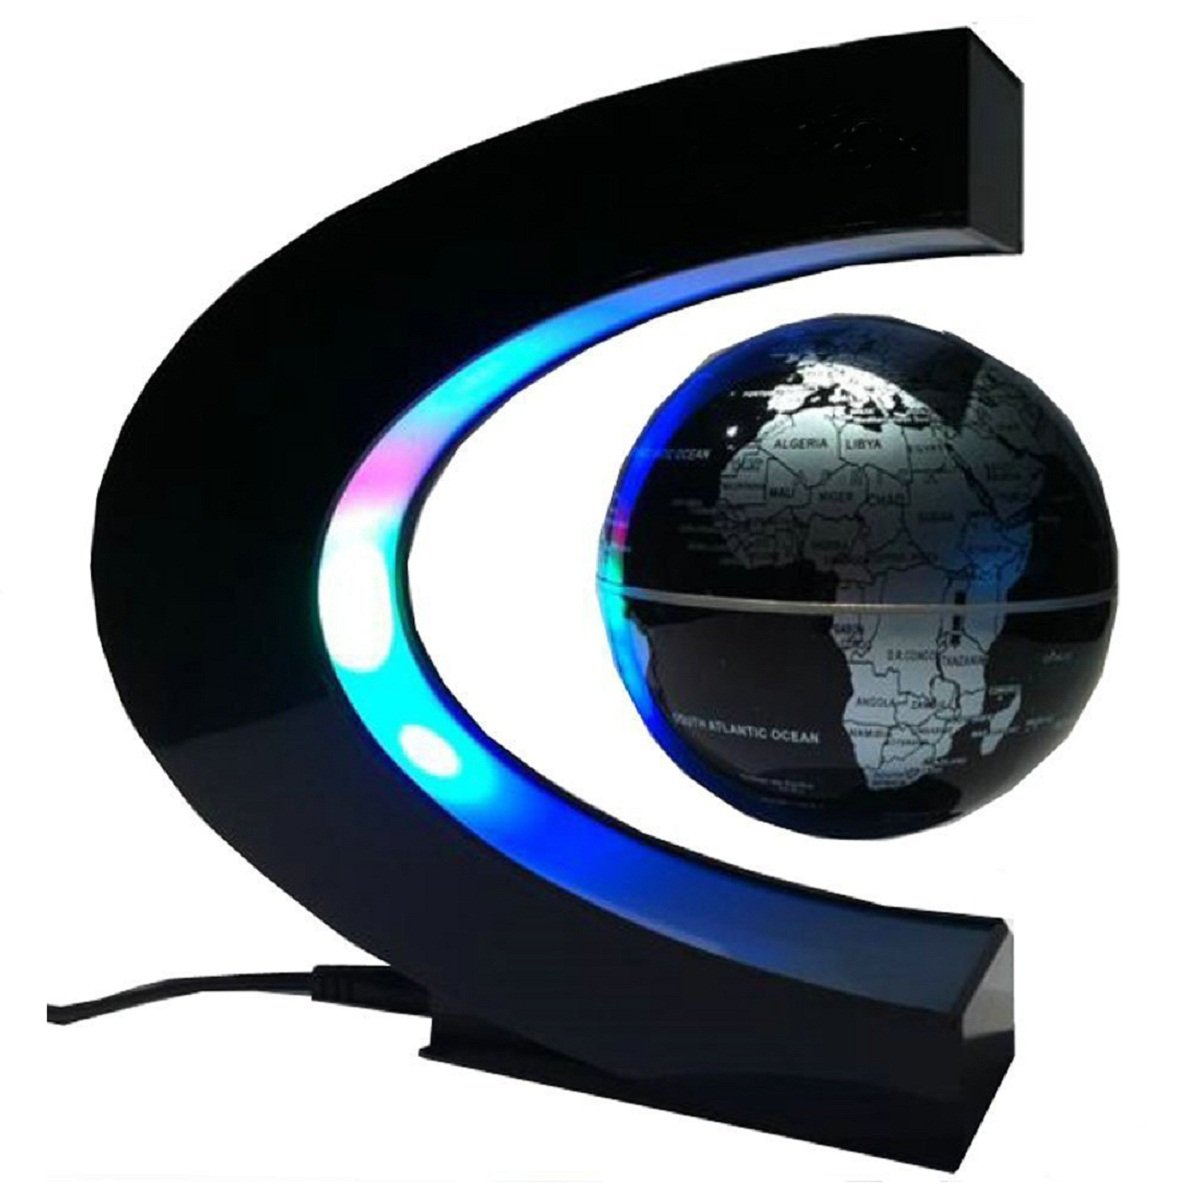 Koiiko funny c shape magnetic levitation floating globe world map koiiko funny c shape magnetic levitation floating globe world map led light office table decorate mysteriously suspended in air great christmas gift for gumiabroncs Choice Image